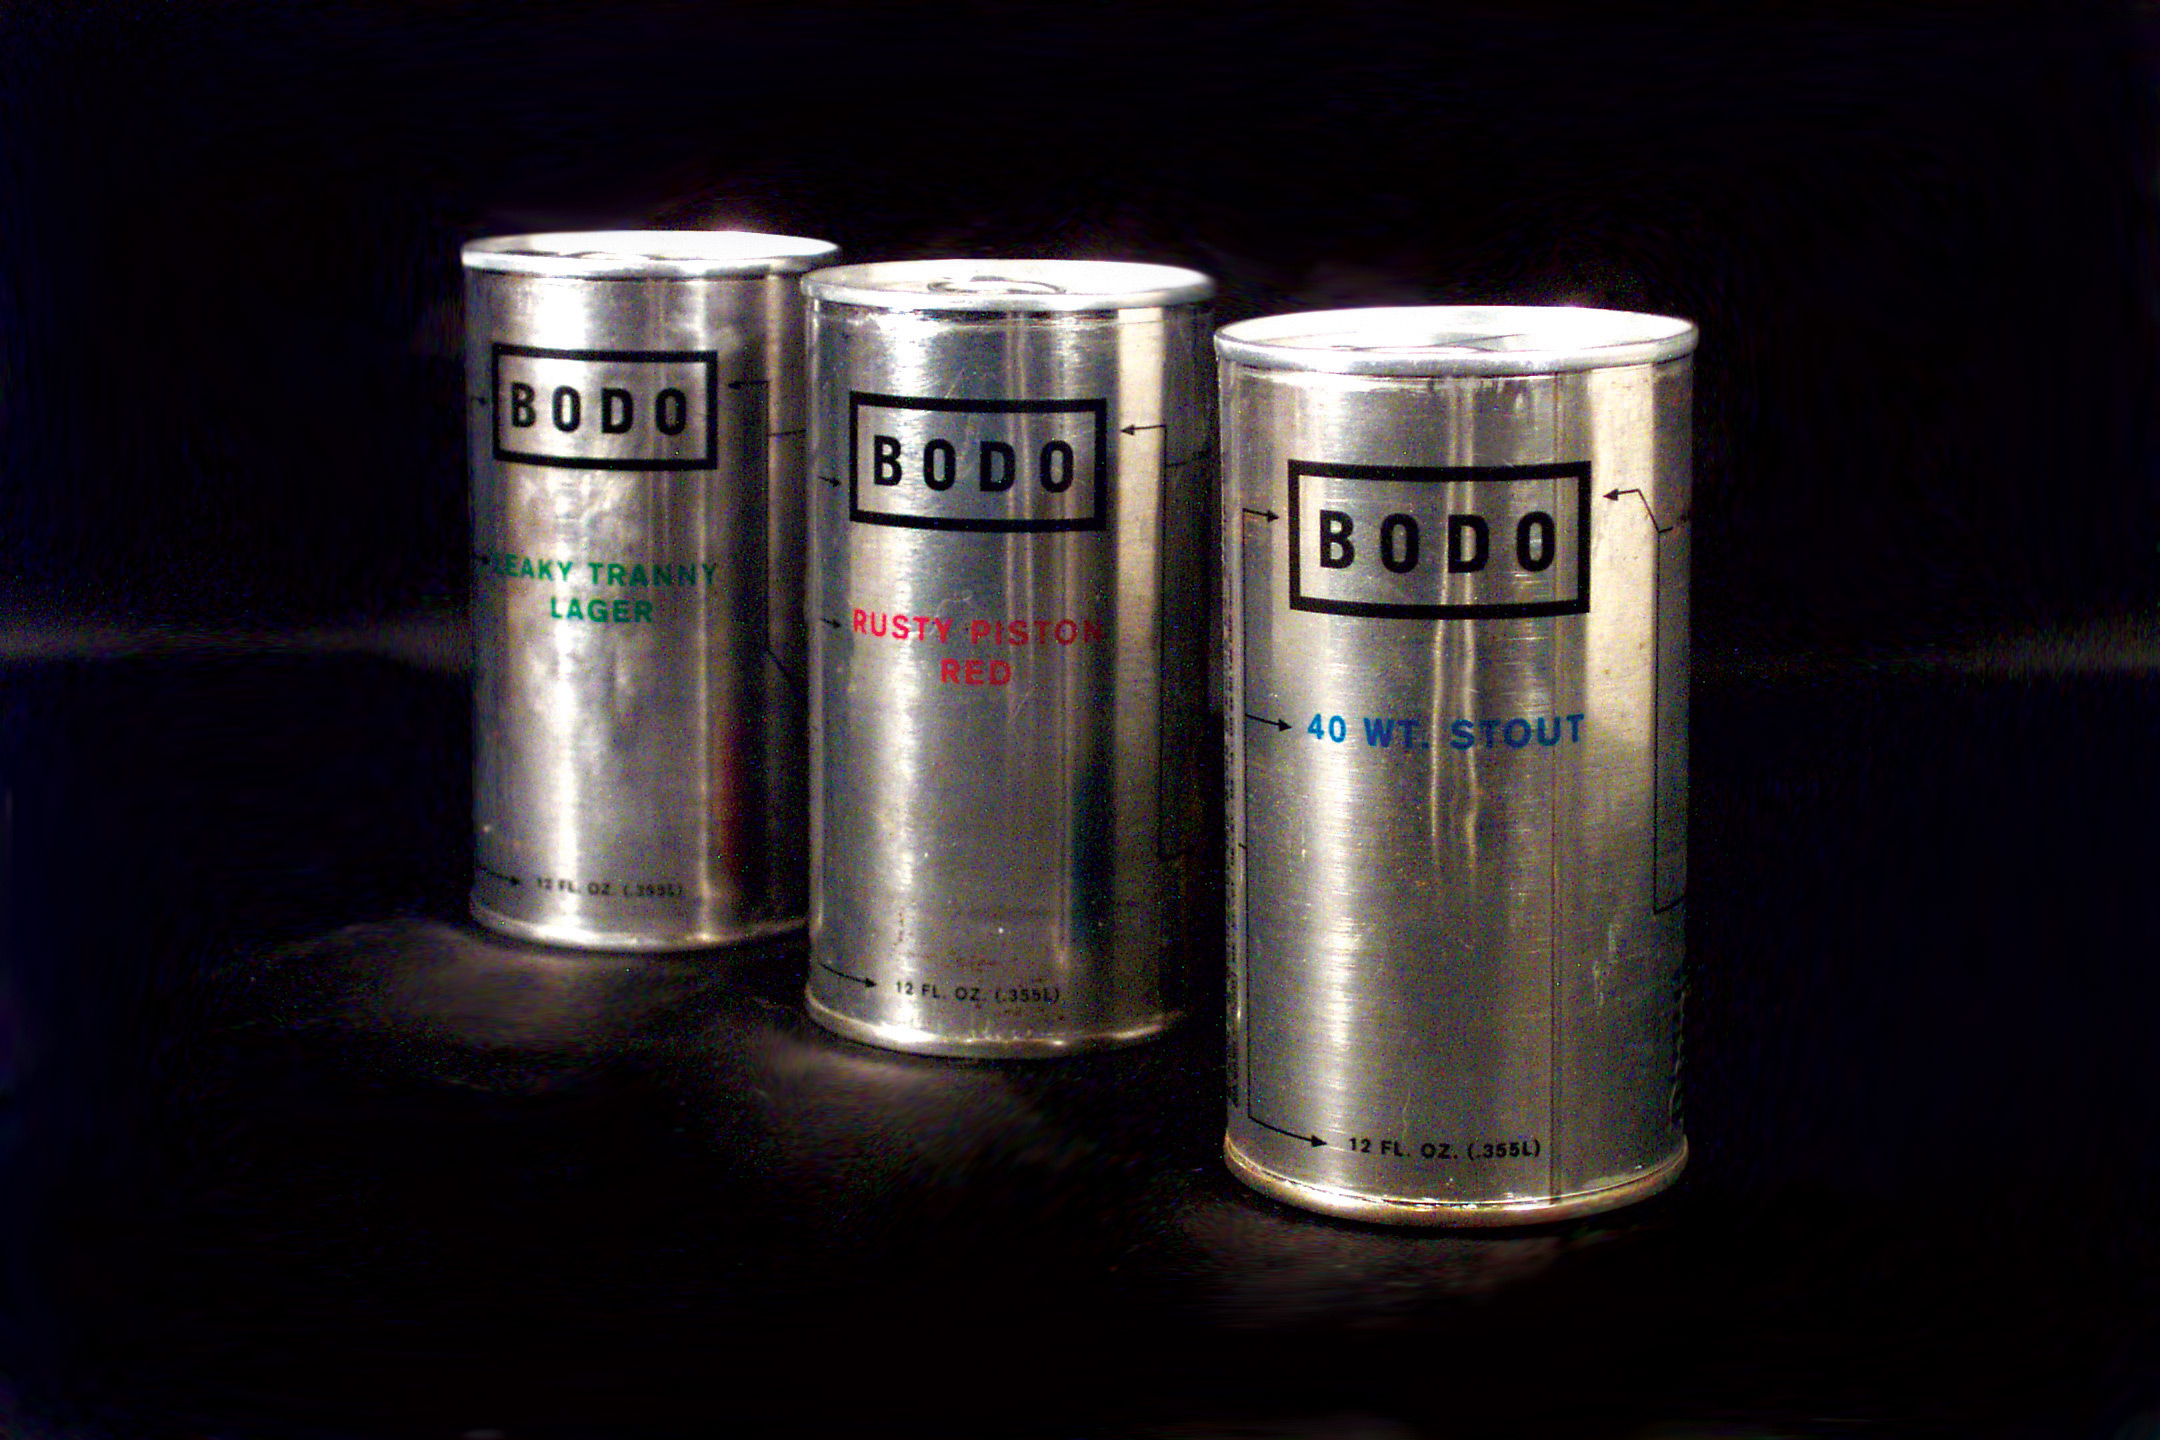 Bodo Beer Packaging